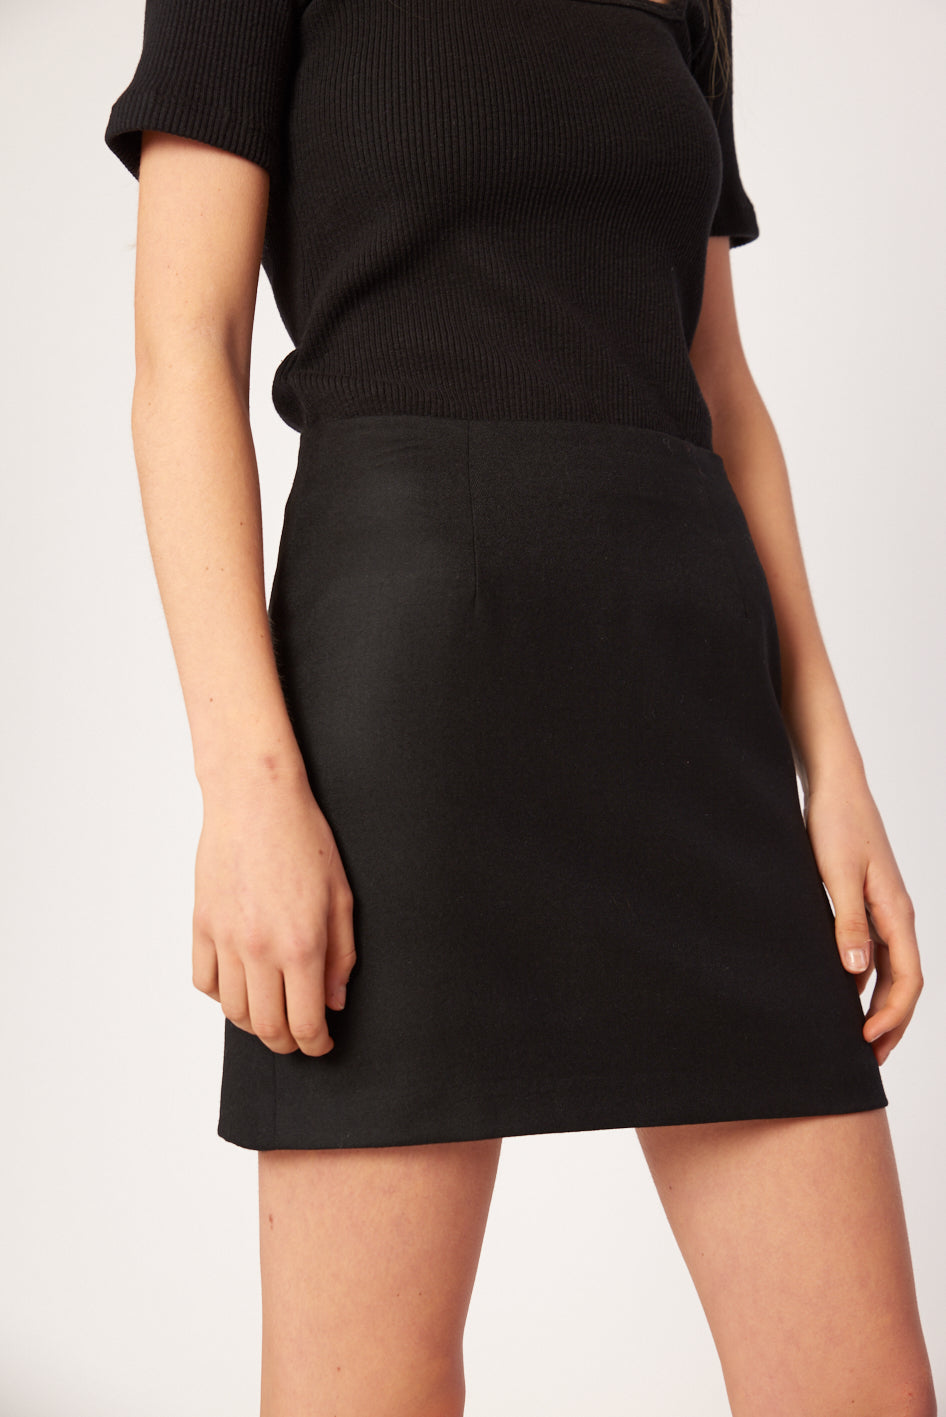 Celeste Mini Skirt- Black Wool